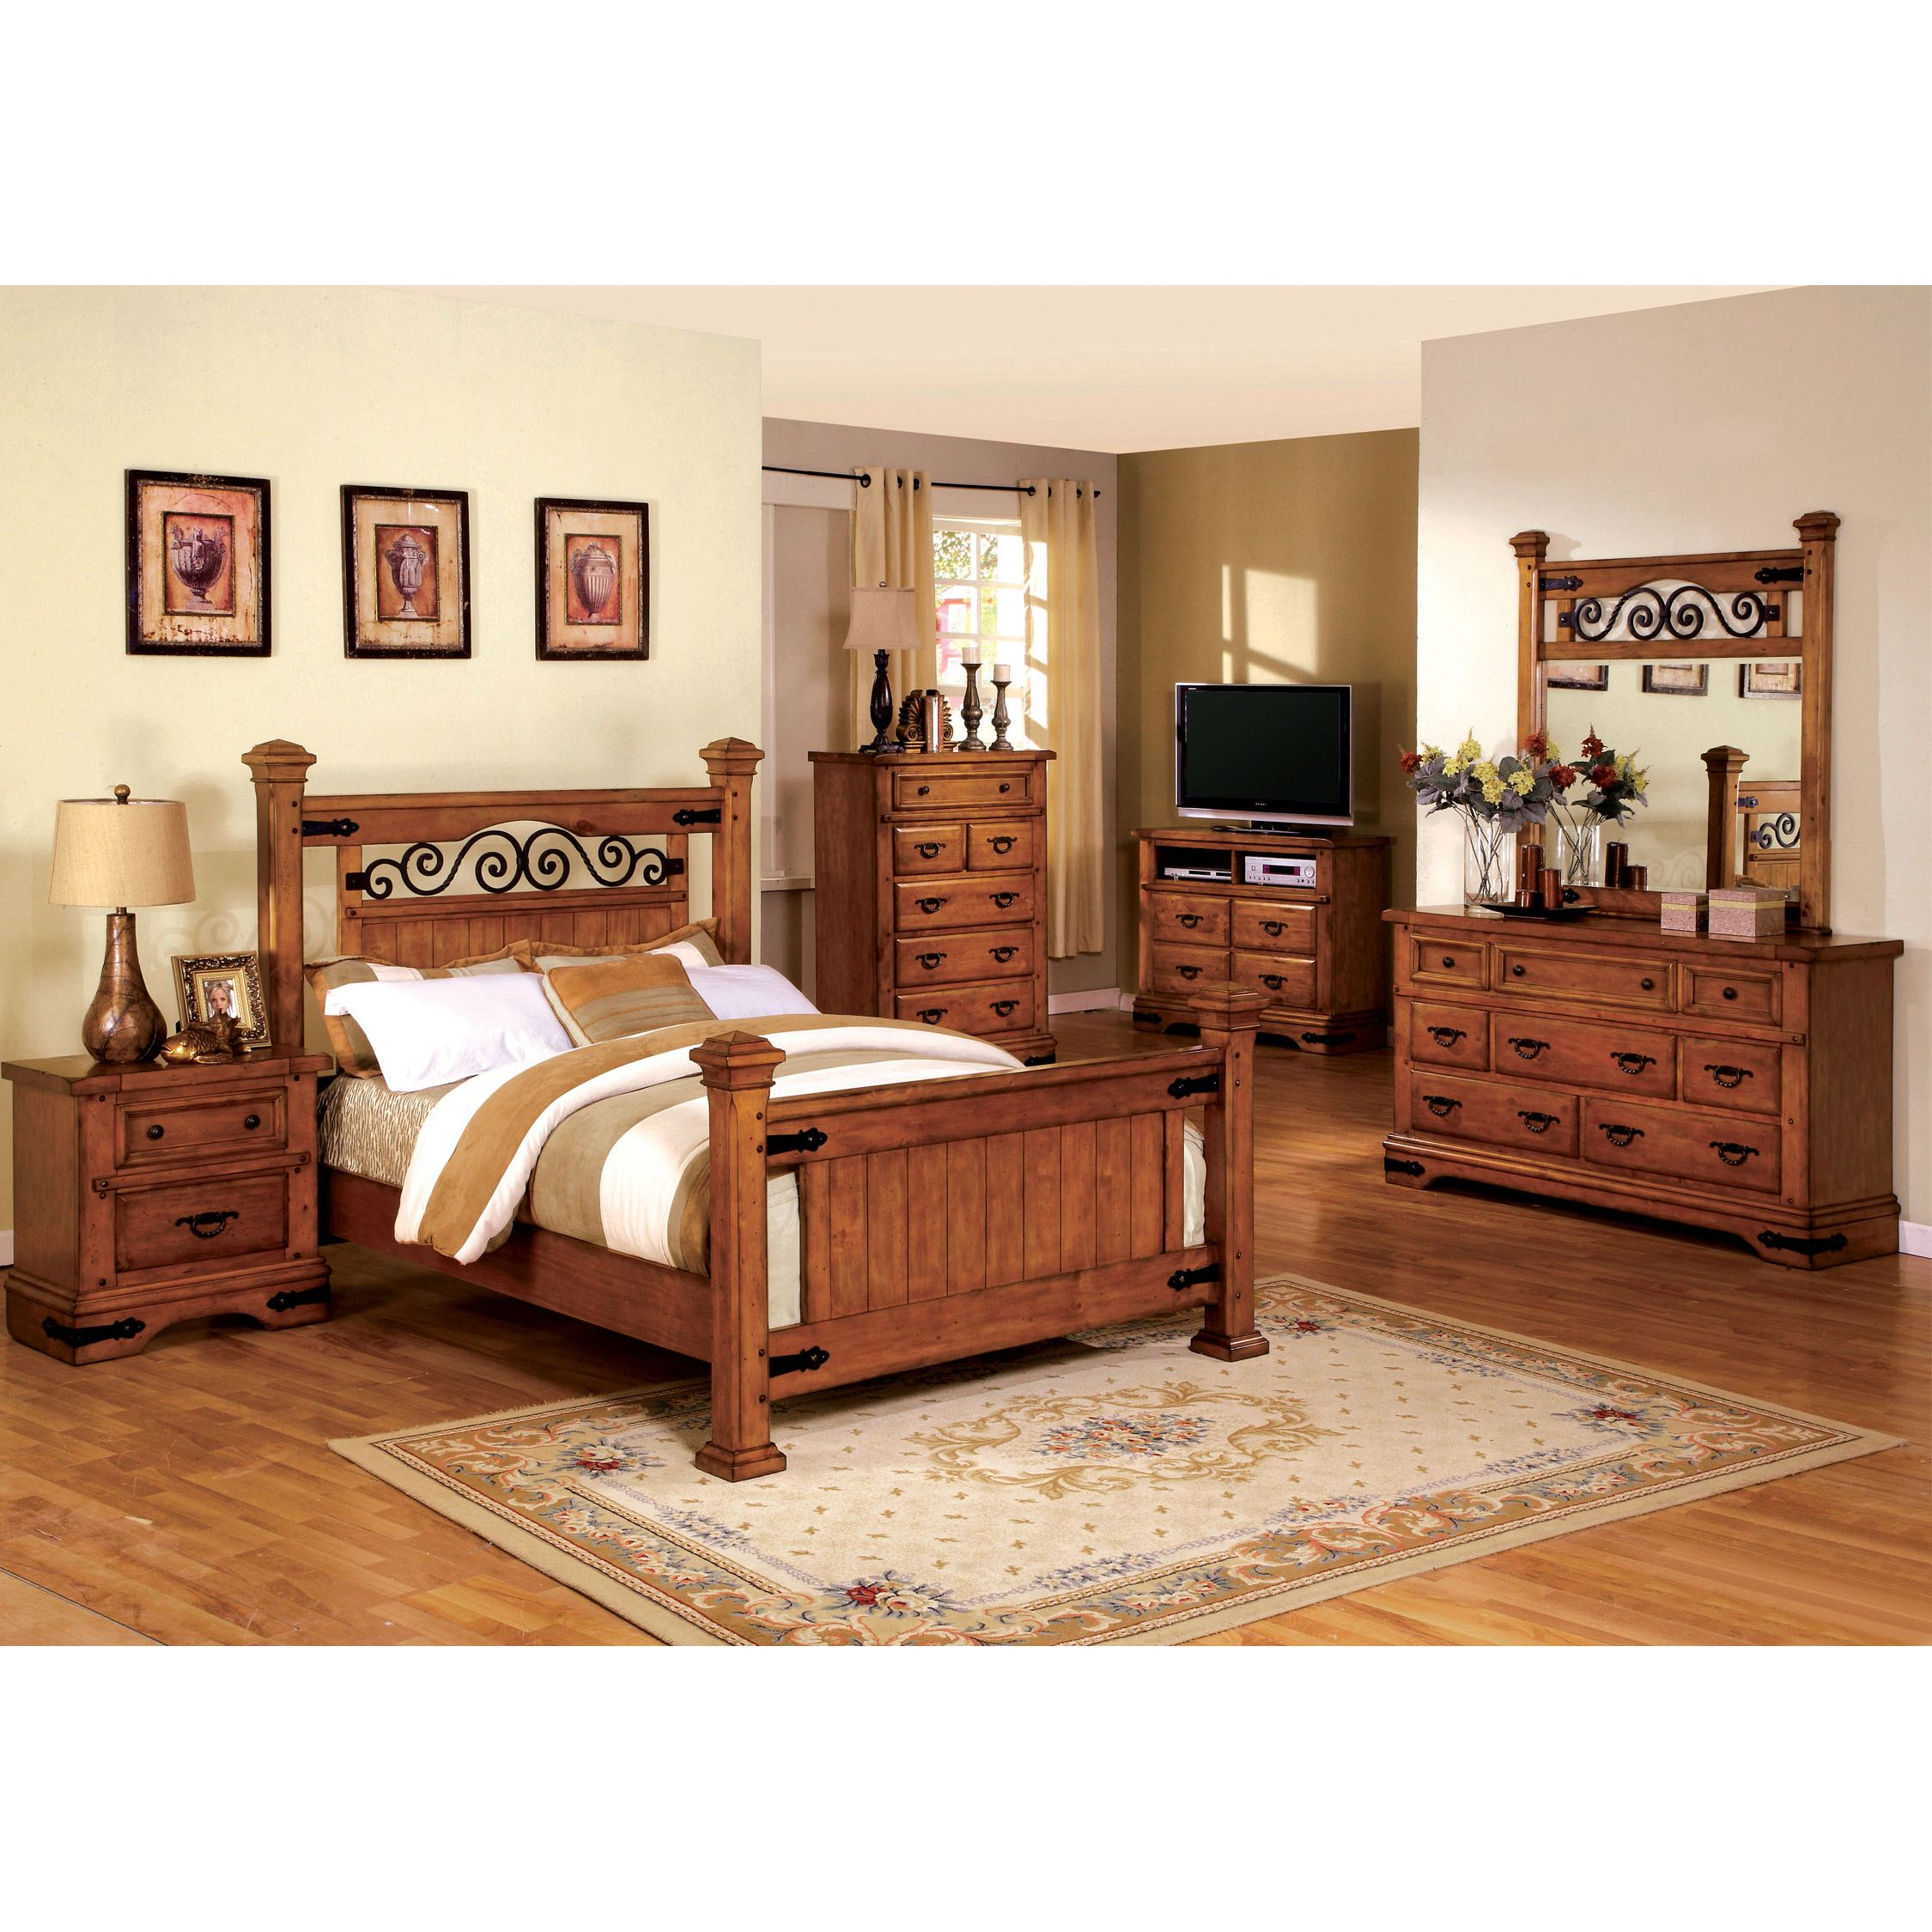 Furniture Of America 4 Piece Country Style American Oak Bedroom Set By  Furniture Of America